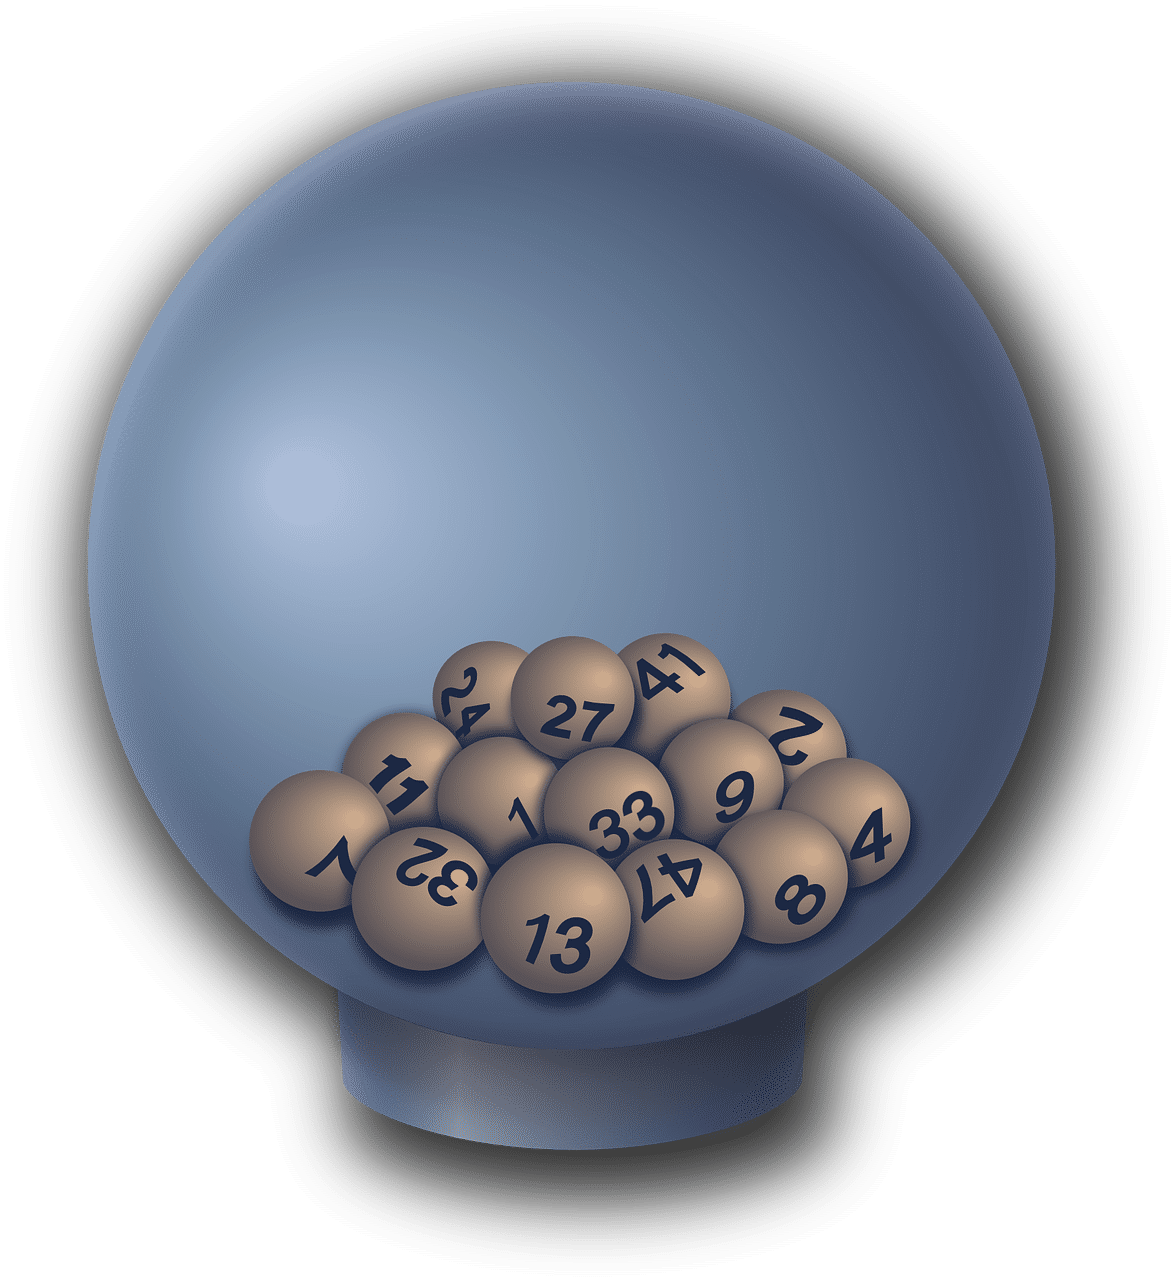 National Lottery Day History Significance And Meaning Read For More Details Republic World